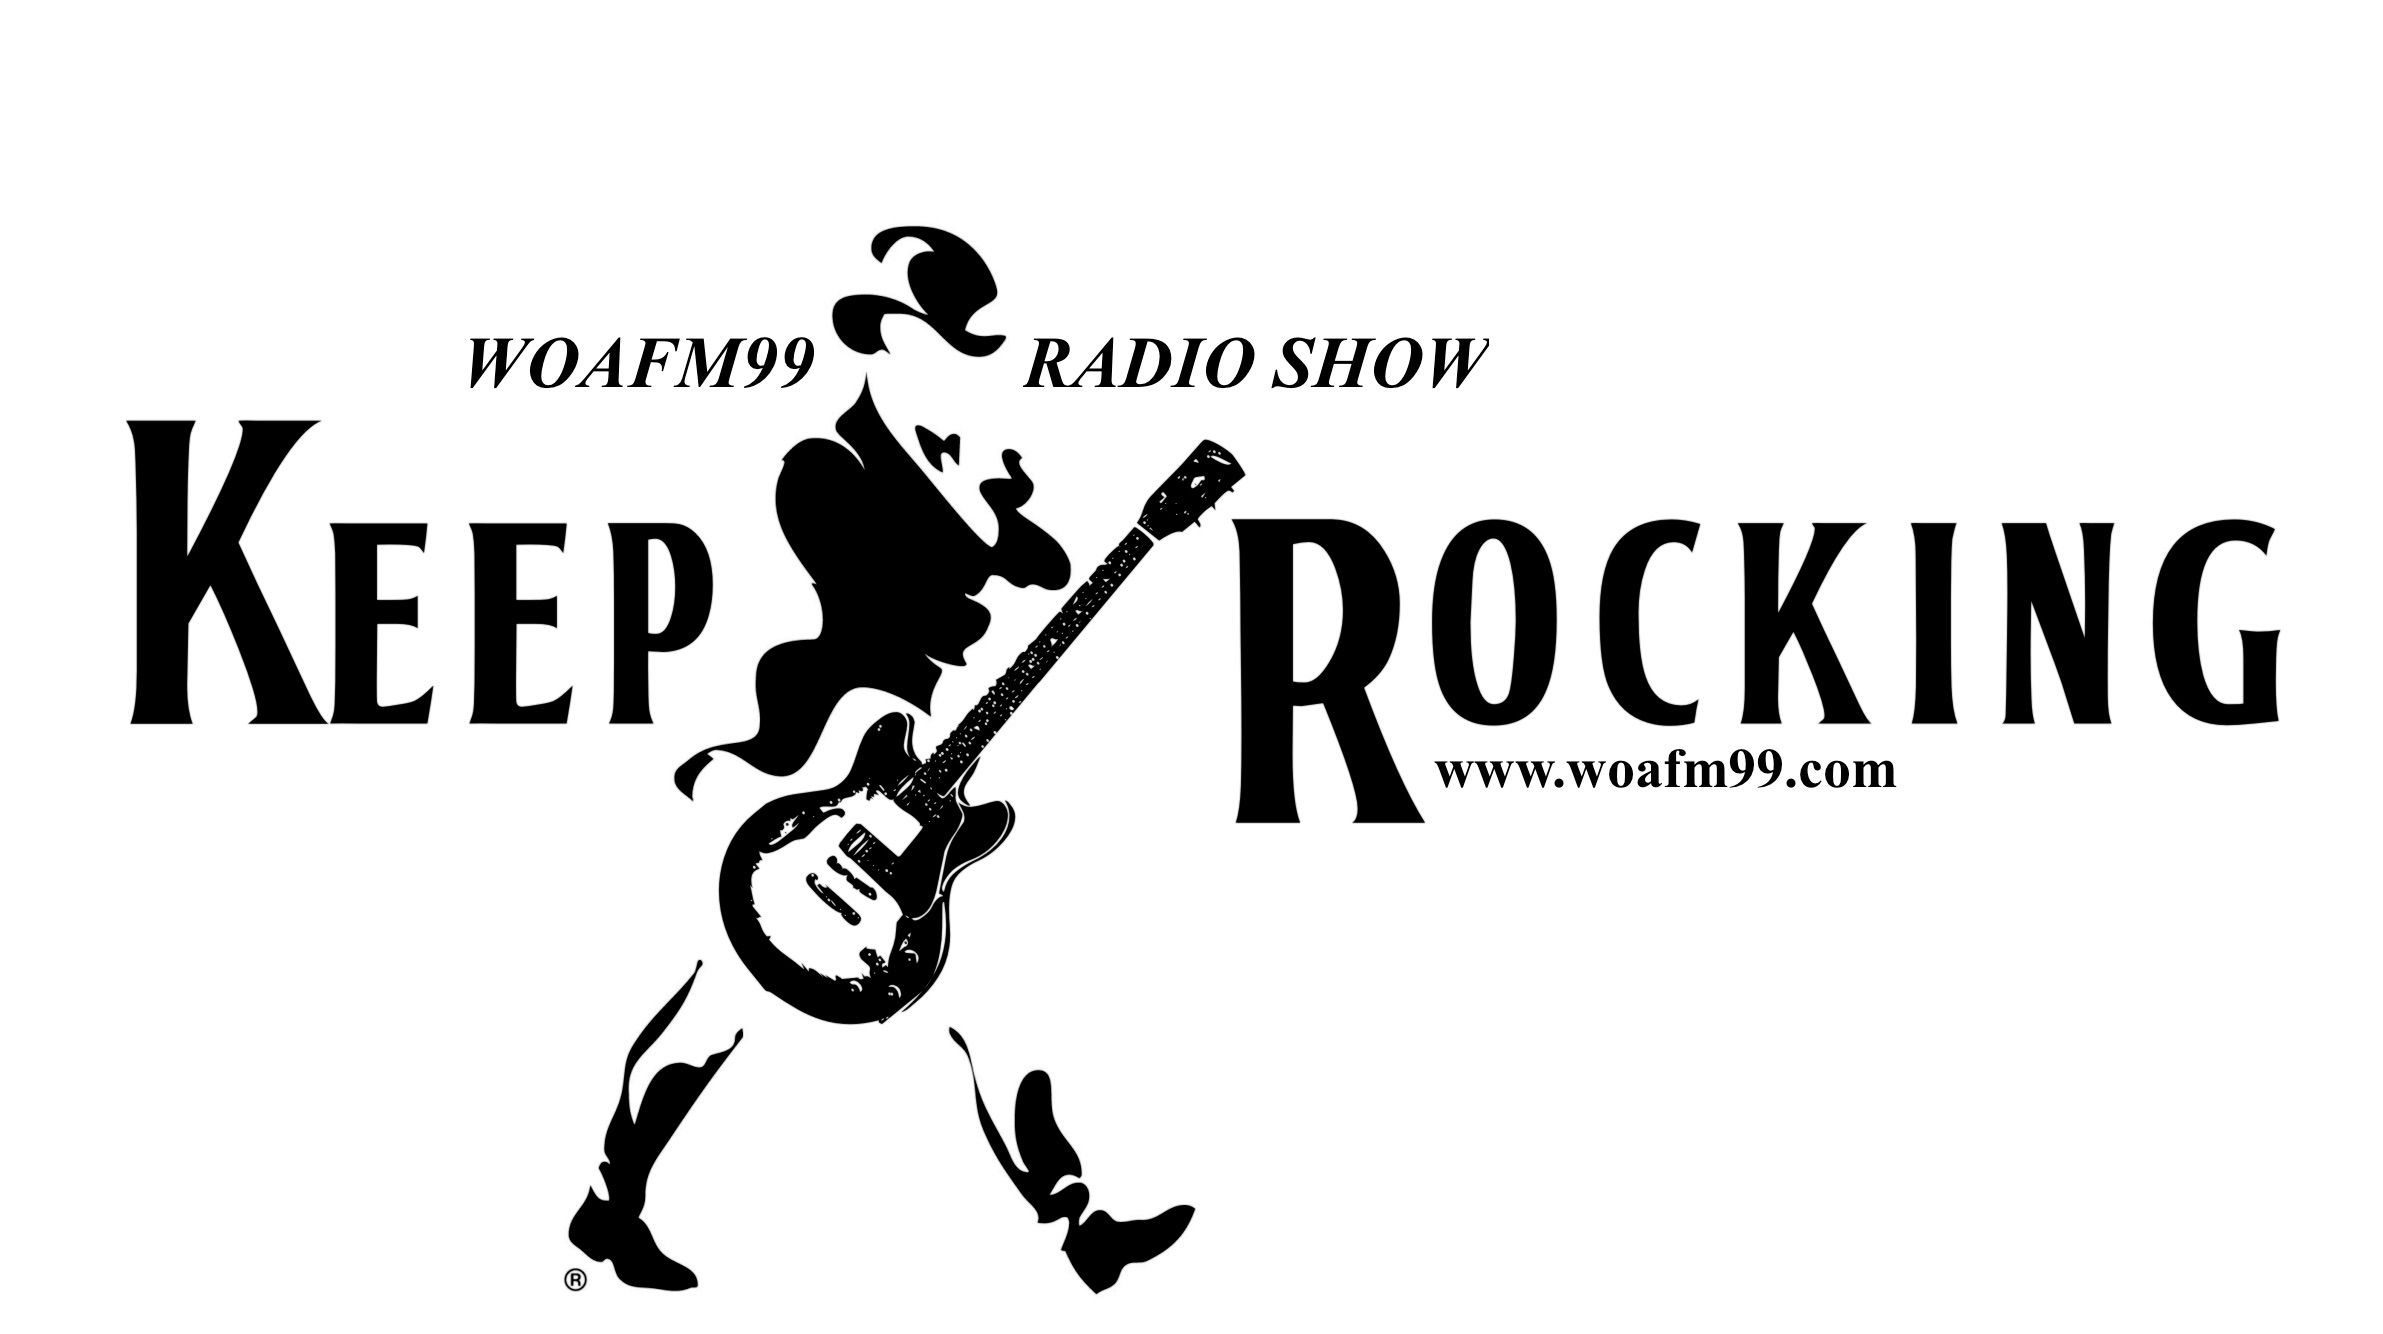 KEEPIN IT ROCKIN- WOAFM99 Radio Show (Episode 5 / Season 12)